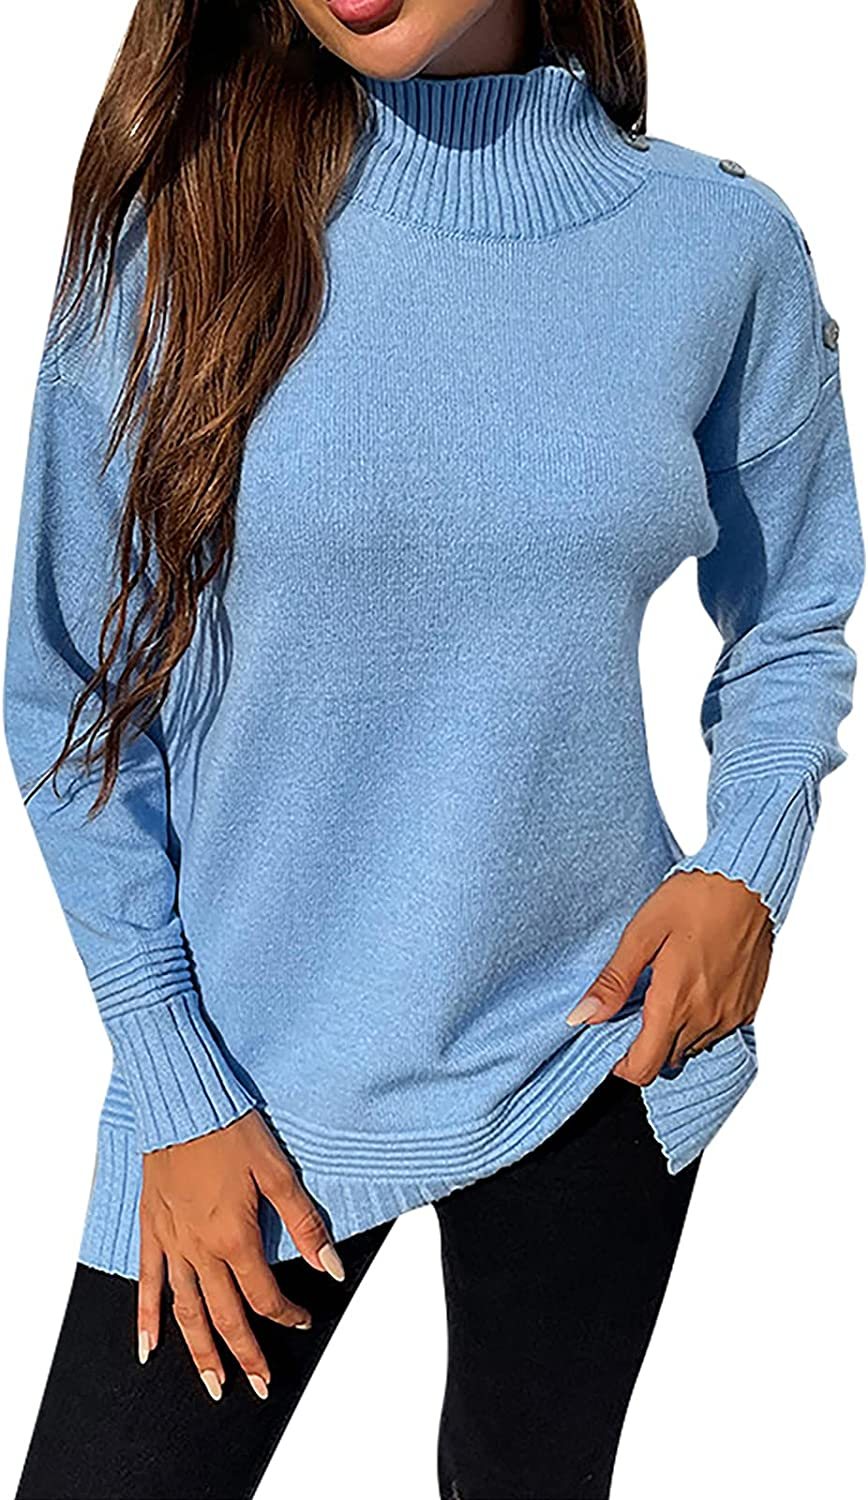 New sales Fall Sweaters for Women Solid Max 83% OFF Half Sweater Turtleneck Color Hem